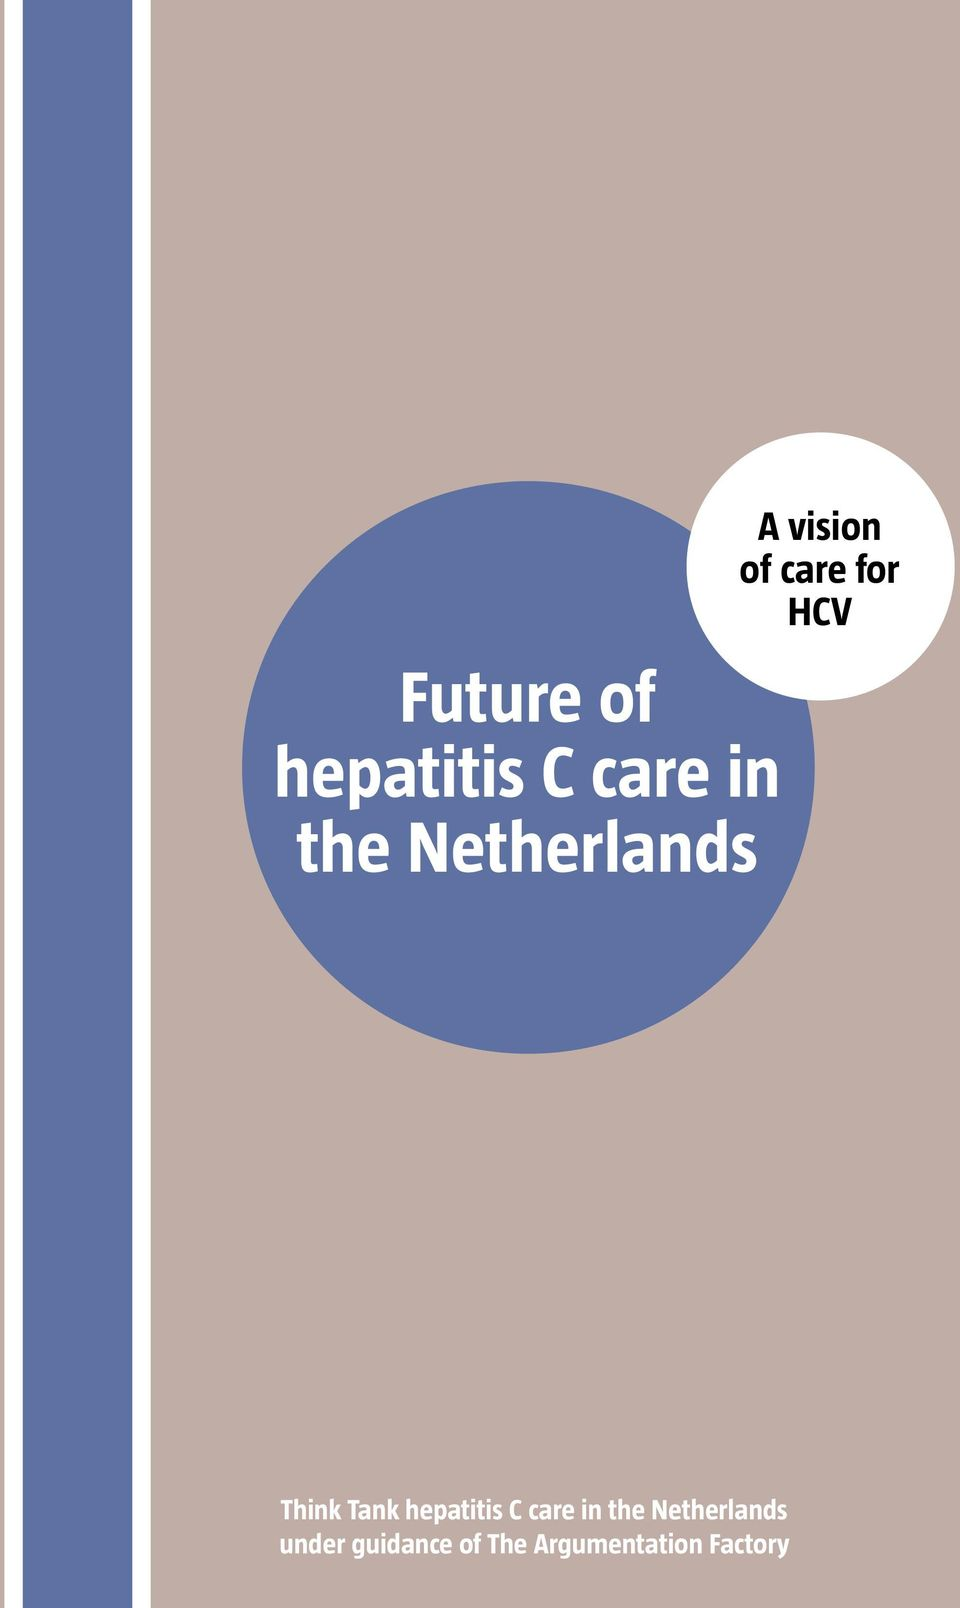 Think Tank hepatitis C care in the